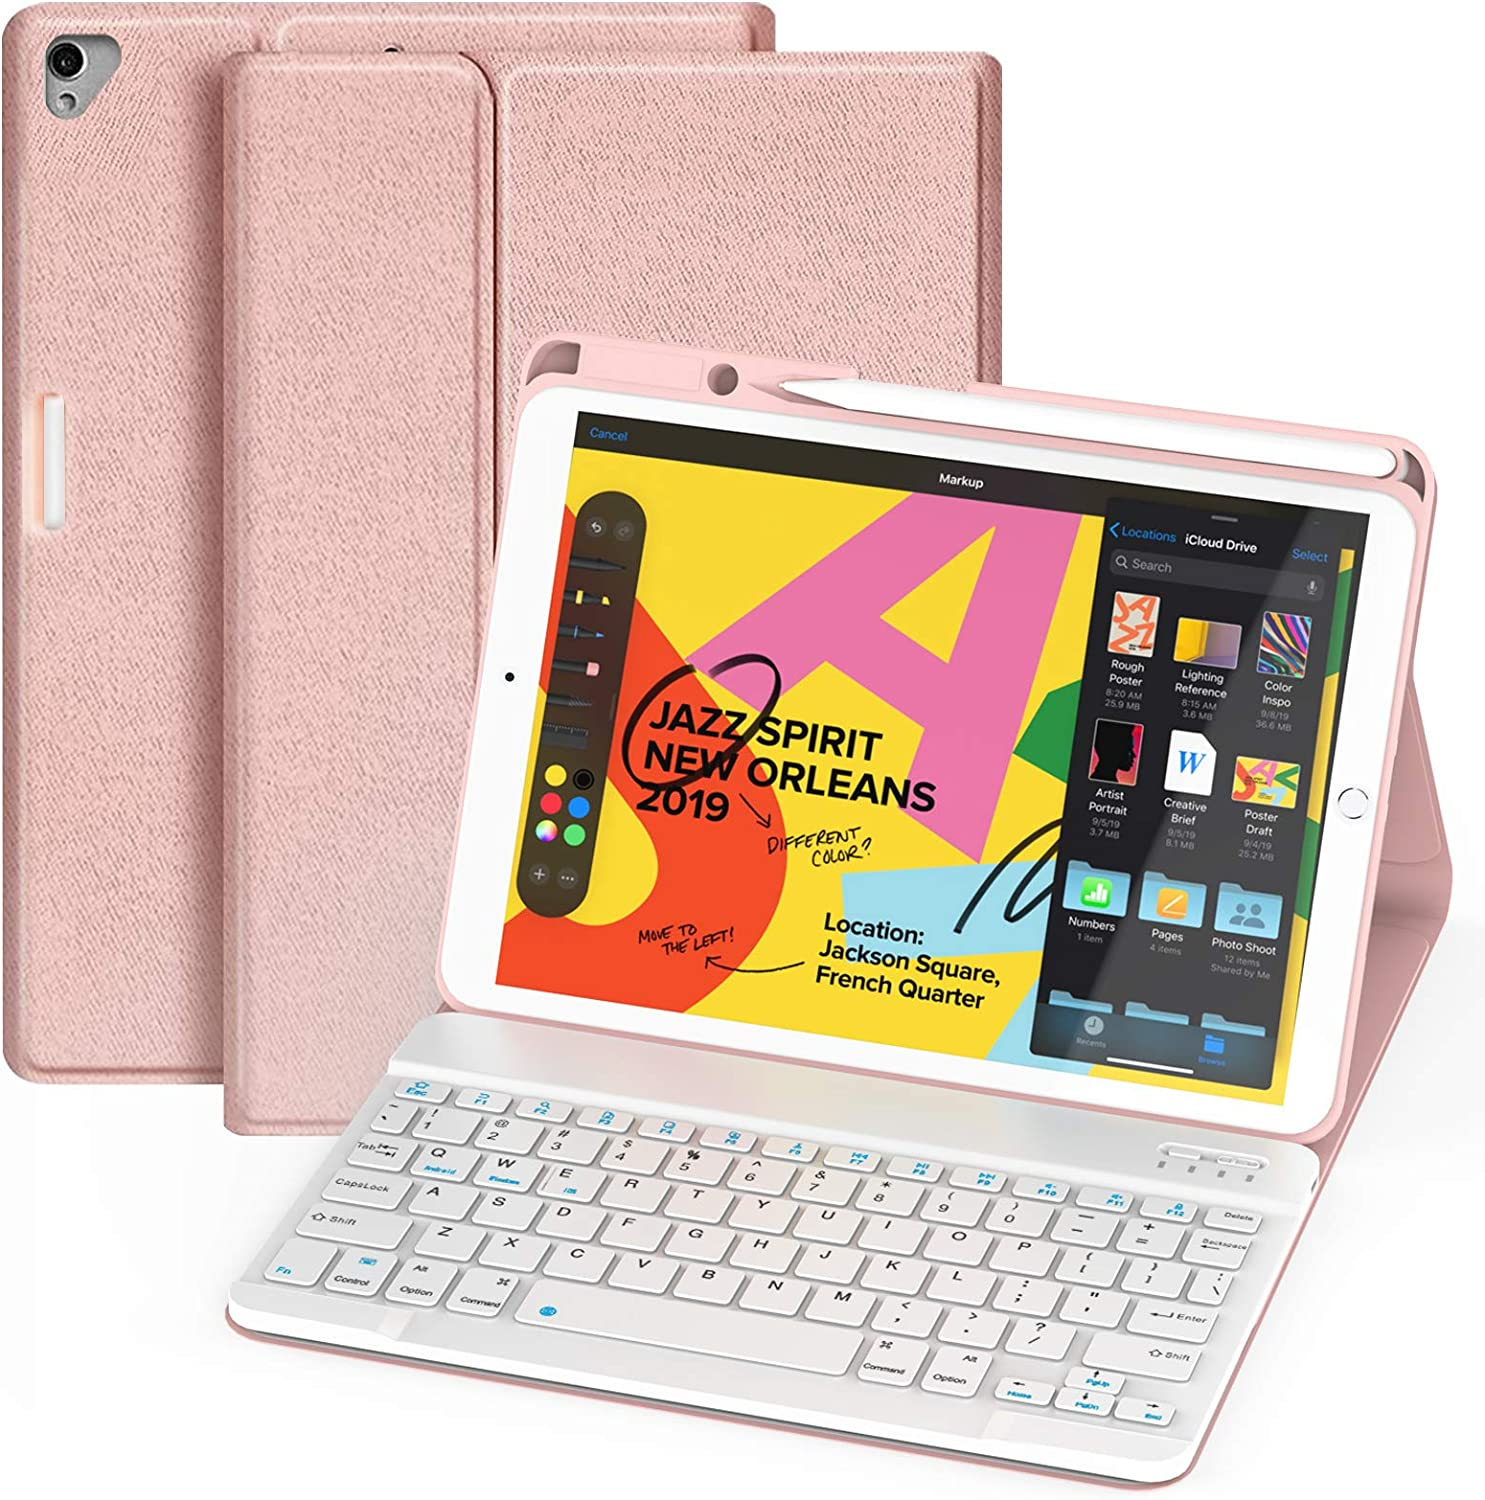 Maxfree iPad Case with Keyboard 8th/7th Gen 10.2, iPad Pro 10.5/Air 3rd Gen 2019 2017, Detachable Wireless/BT Keyboard, Upgraded Upper Pencil Holder, Folio Smart Cover for iPad 10.2/10.5 Inch